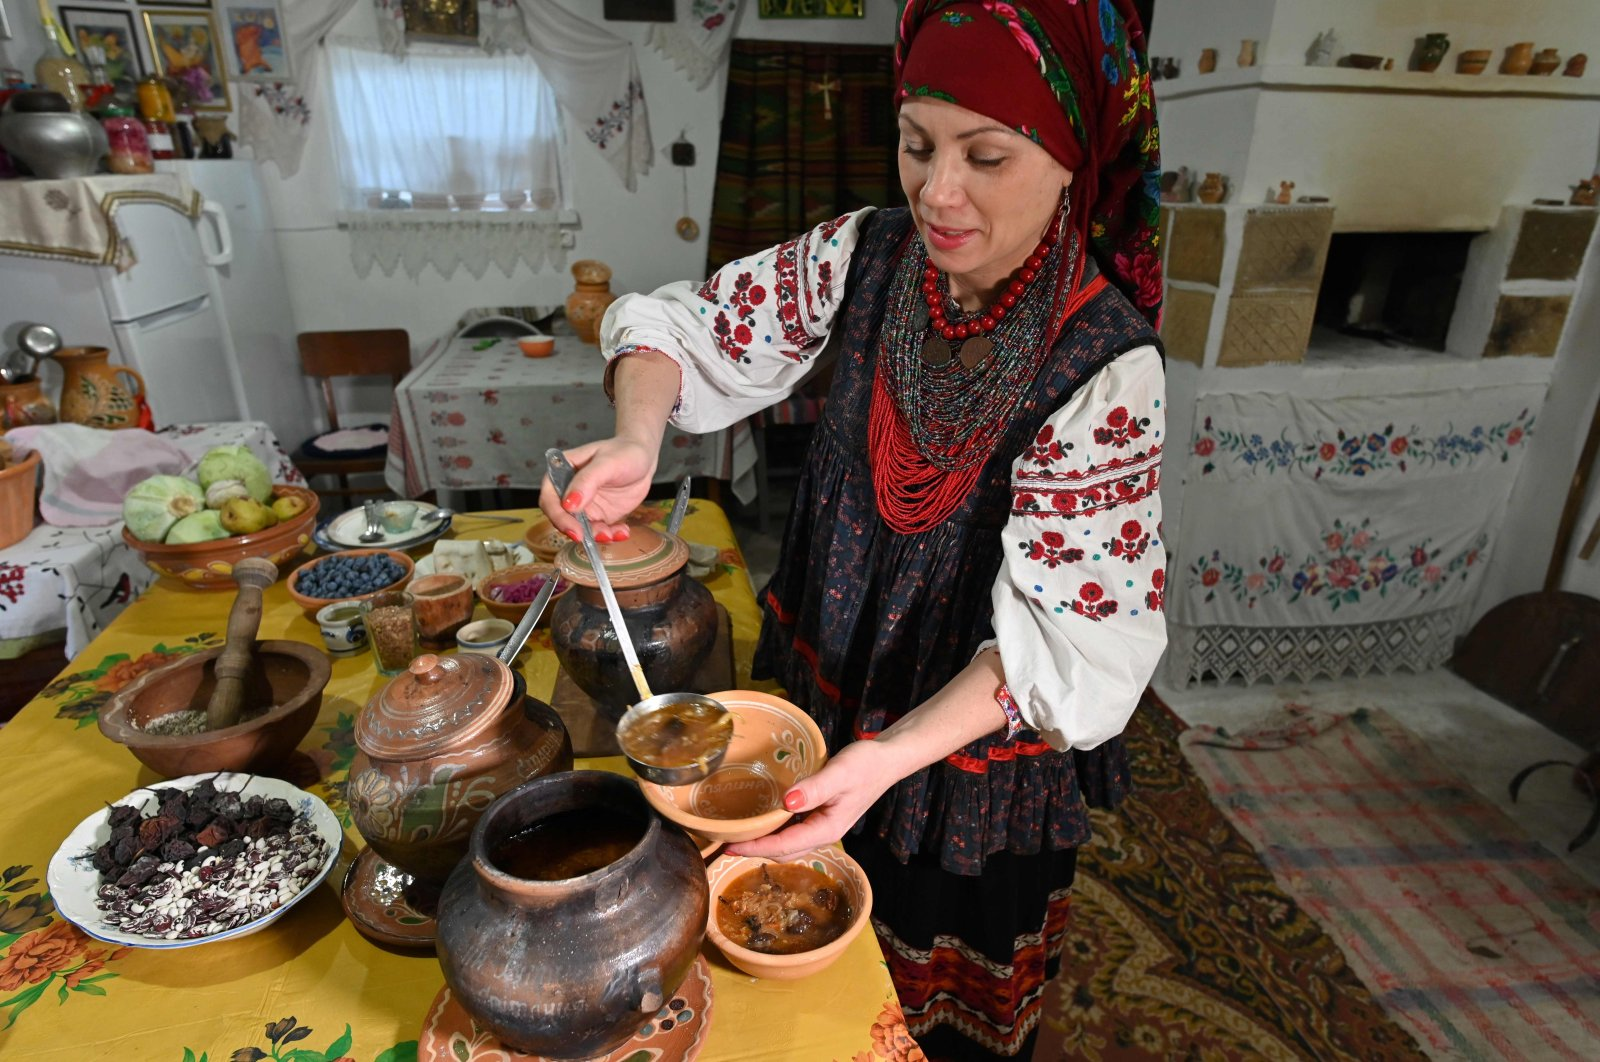 An Ukrainian ethnologist and historian, who studies borscht and has 365 of its unique recipes from all over Ukraine in her private collection, wears Ukraine's traditional clothes and headdress cooks borscht in clay pots in the wood stove in the village of Opishnya in Poltava region, Nov. 26, 2020. (AFP Photo)